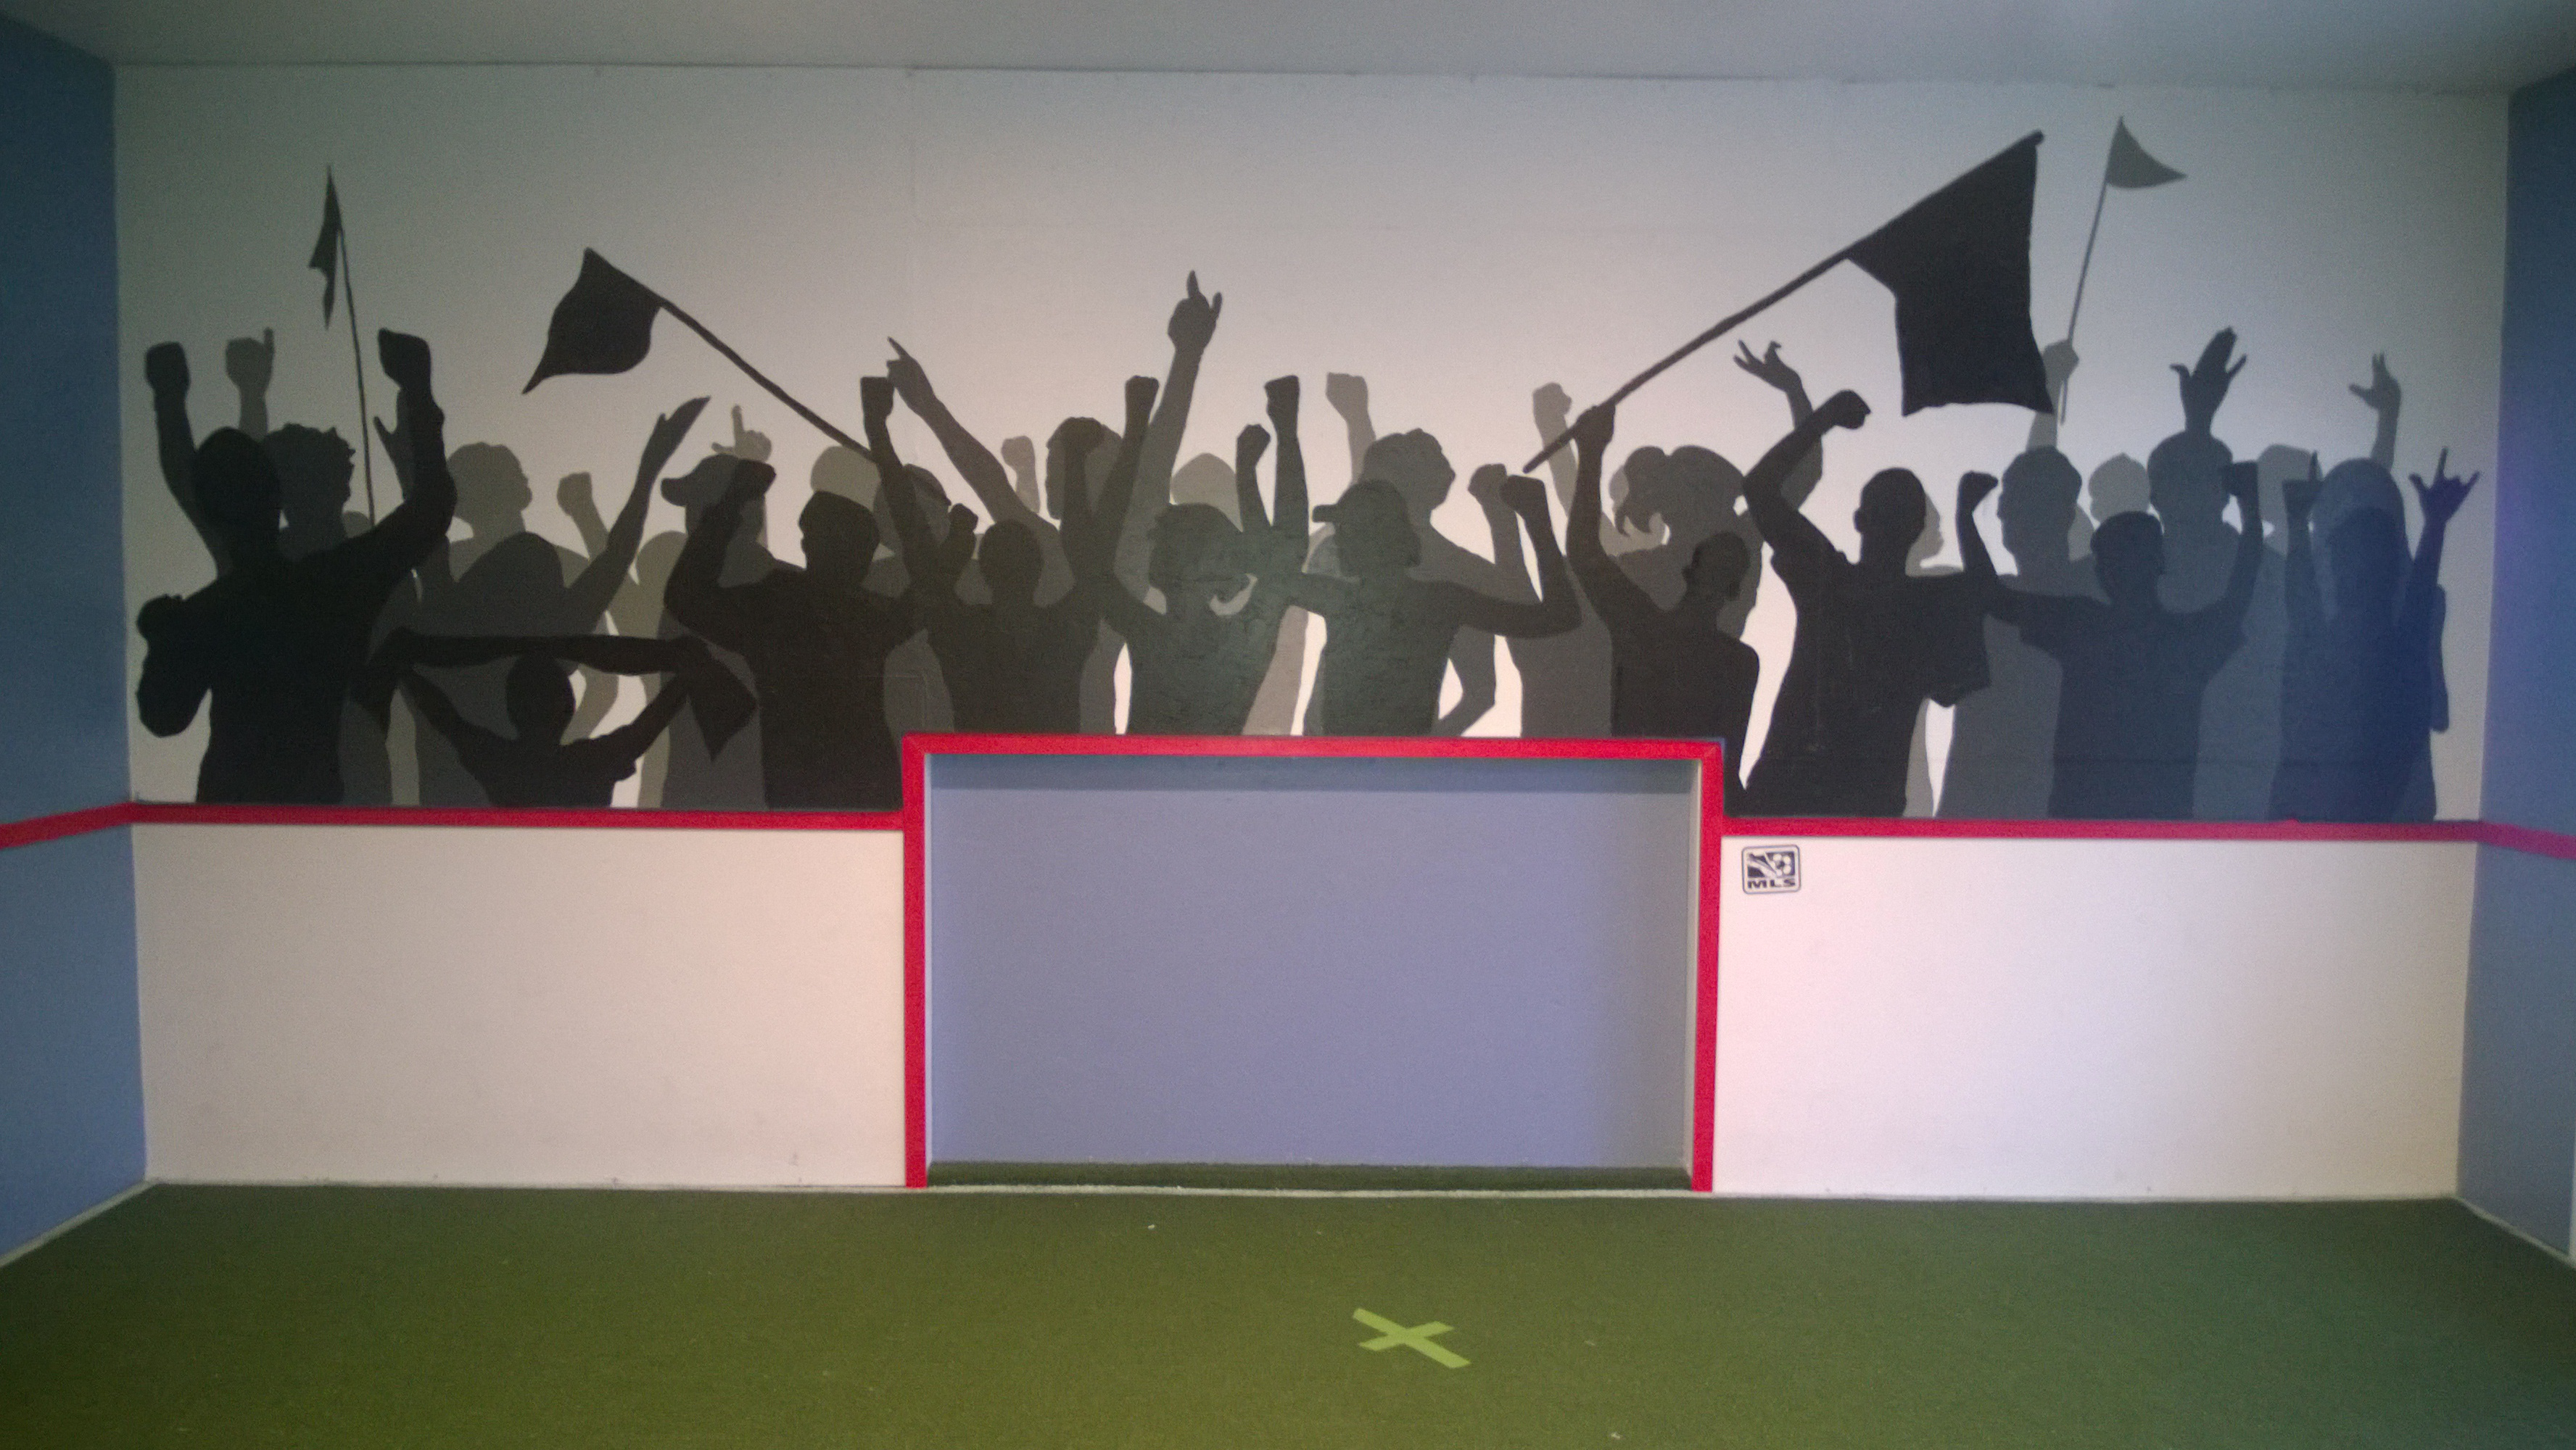 Fan Section Silhouette Mural